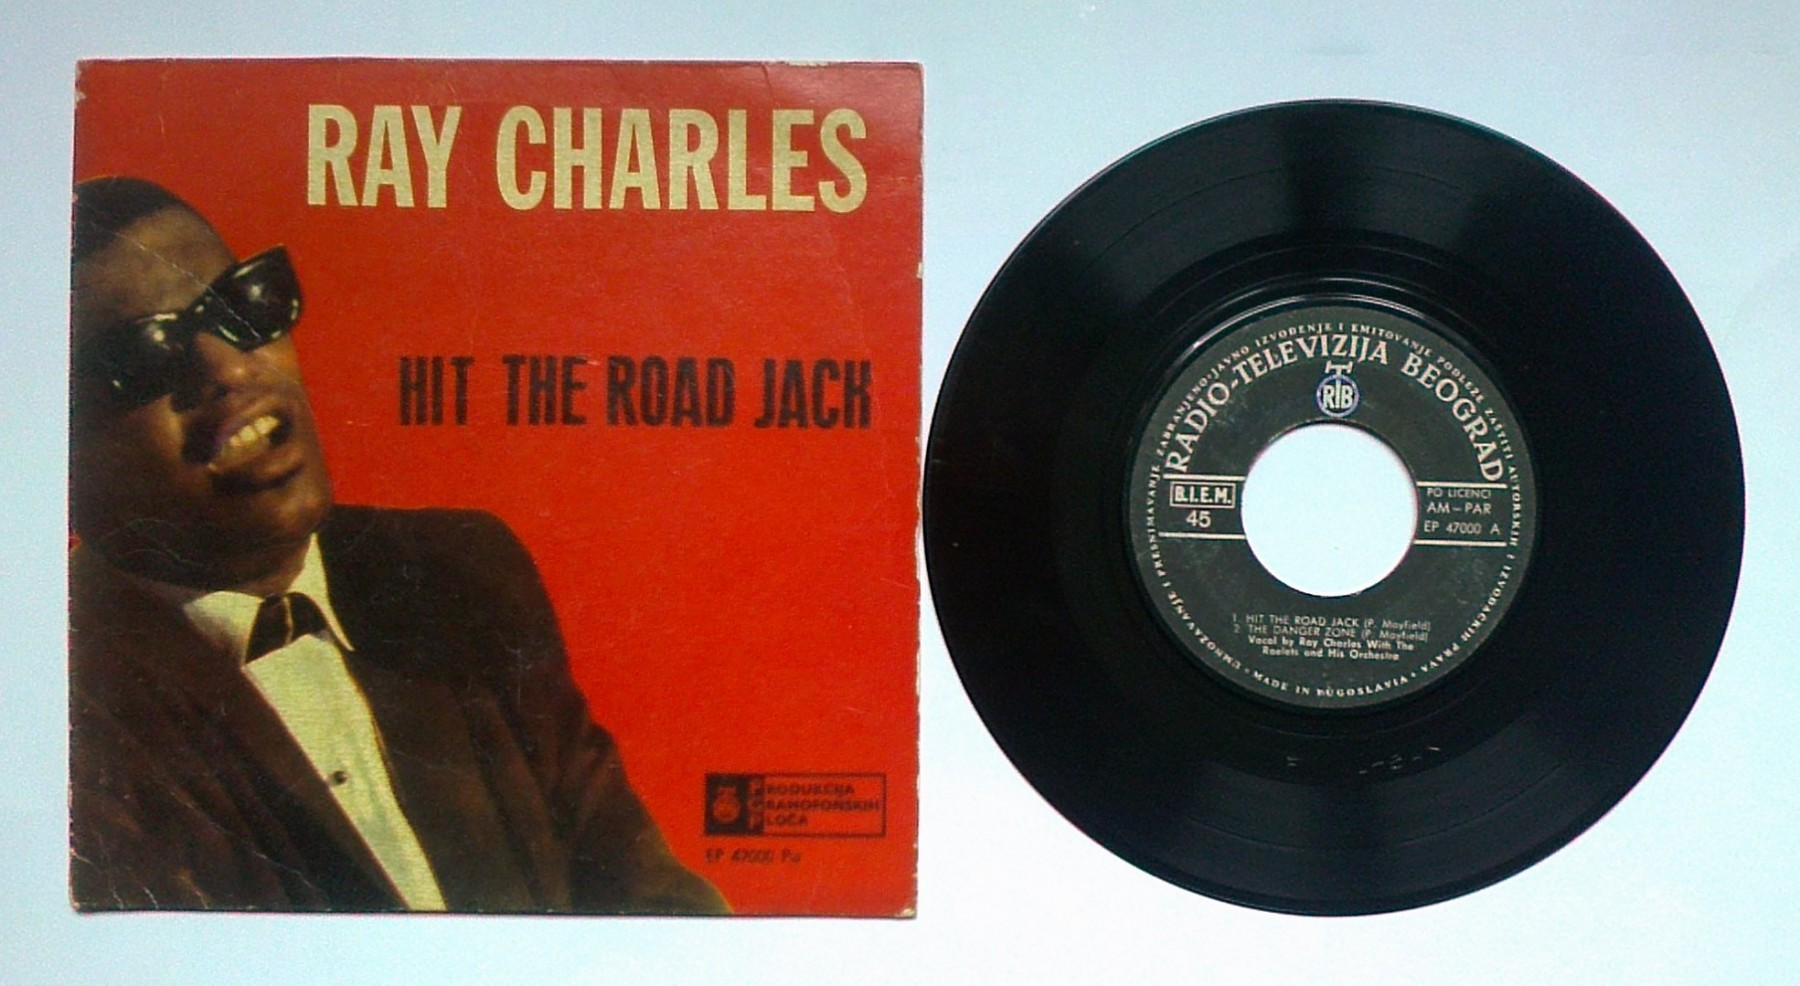 RAY CHARLES - Hit The Road Jack (EP) licenca - Kupindo com